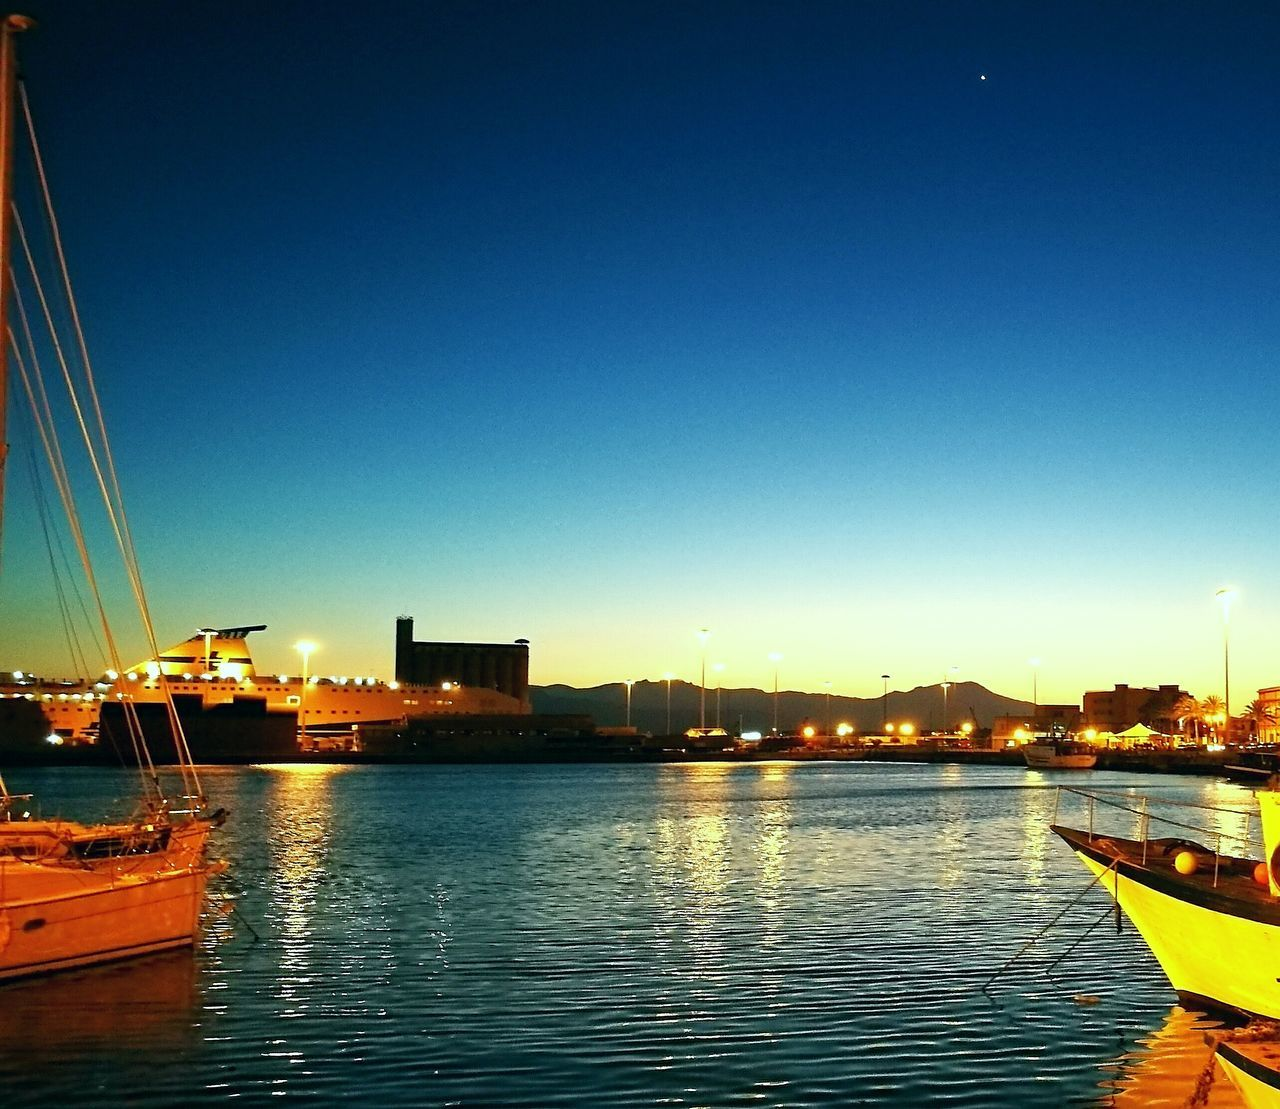 nautical vessel, transportation, water, mode of transport, moored, river, boat, no people, harbor, illuminated, blue, reflection, outdoors, building exterior, marina, waterfront, built structure, architecture, sunset, city, yacht, travel destinations, sky, clear sky, night, sailboat, nature, mast, commercial dock, beauty in nature